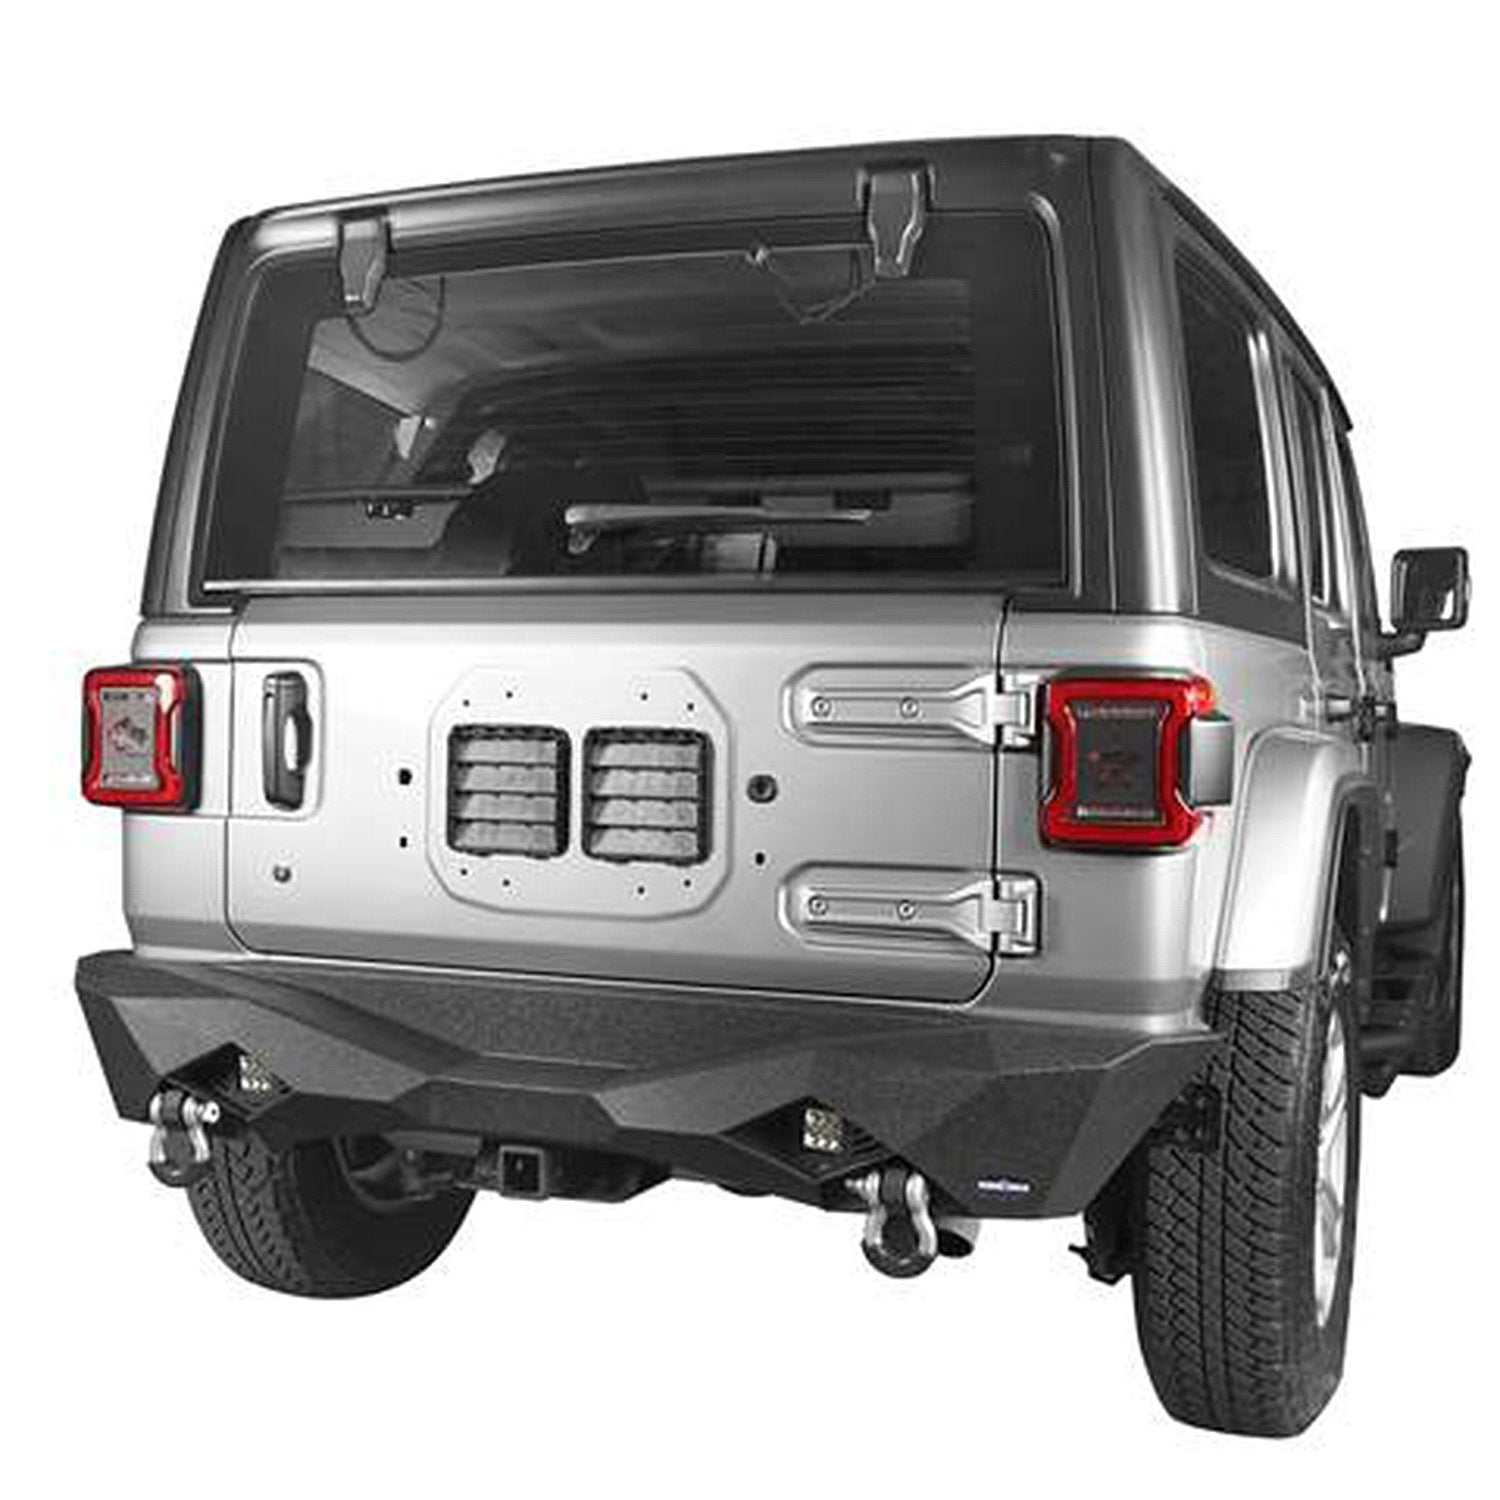 Diomand Style Rear Bumper for 18-19 Jeep Wrangler JL